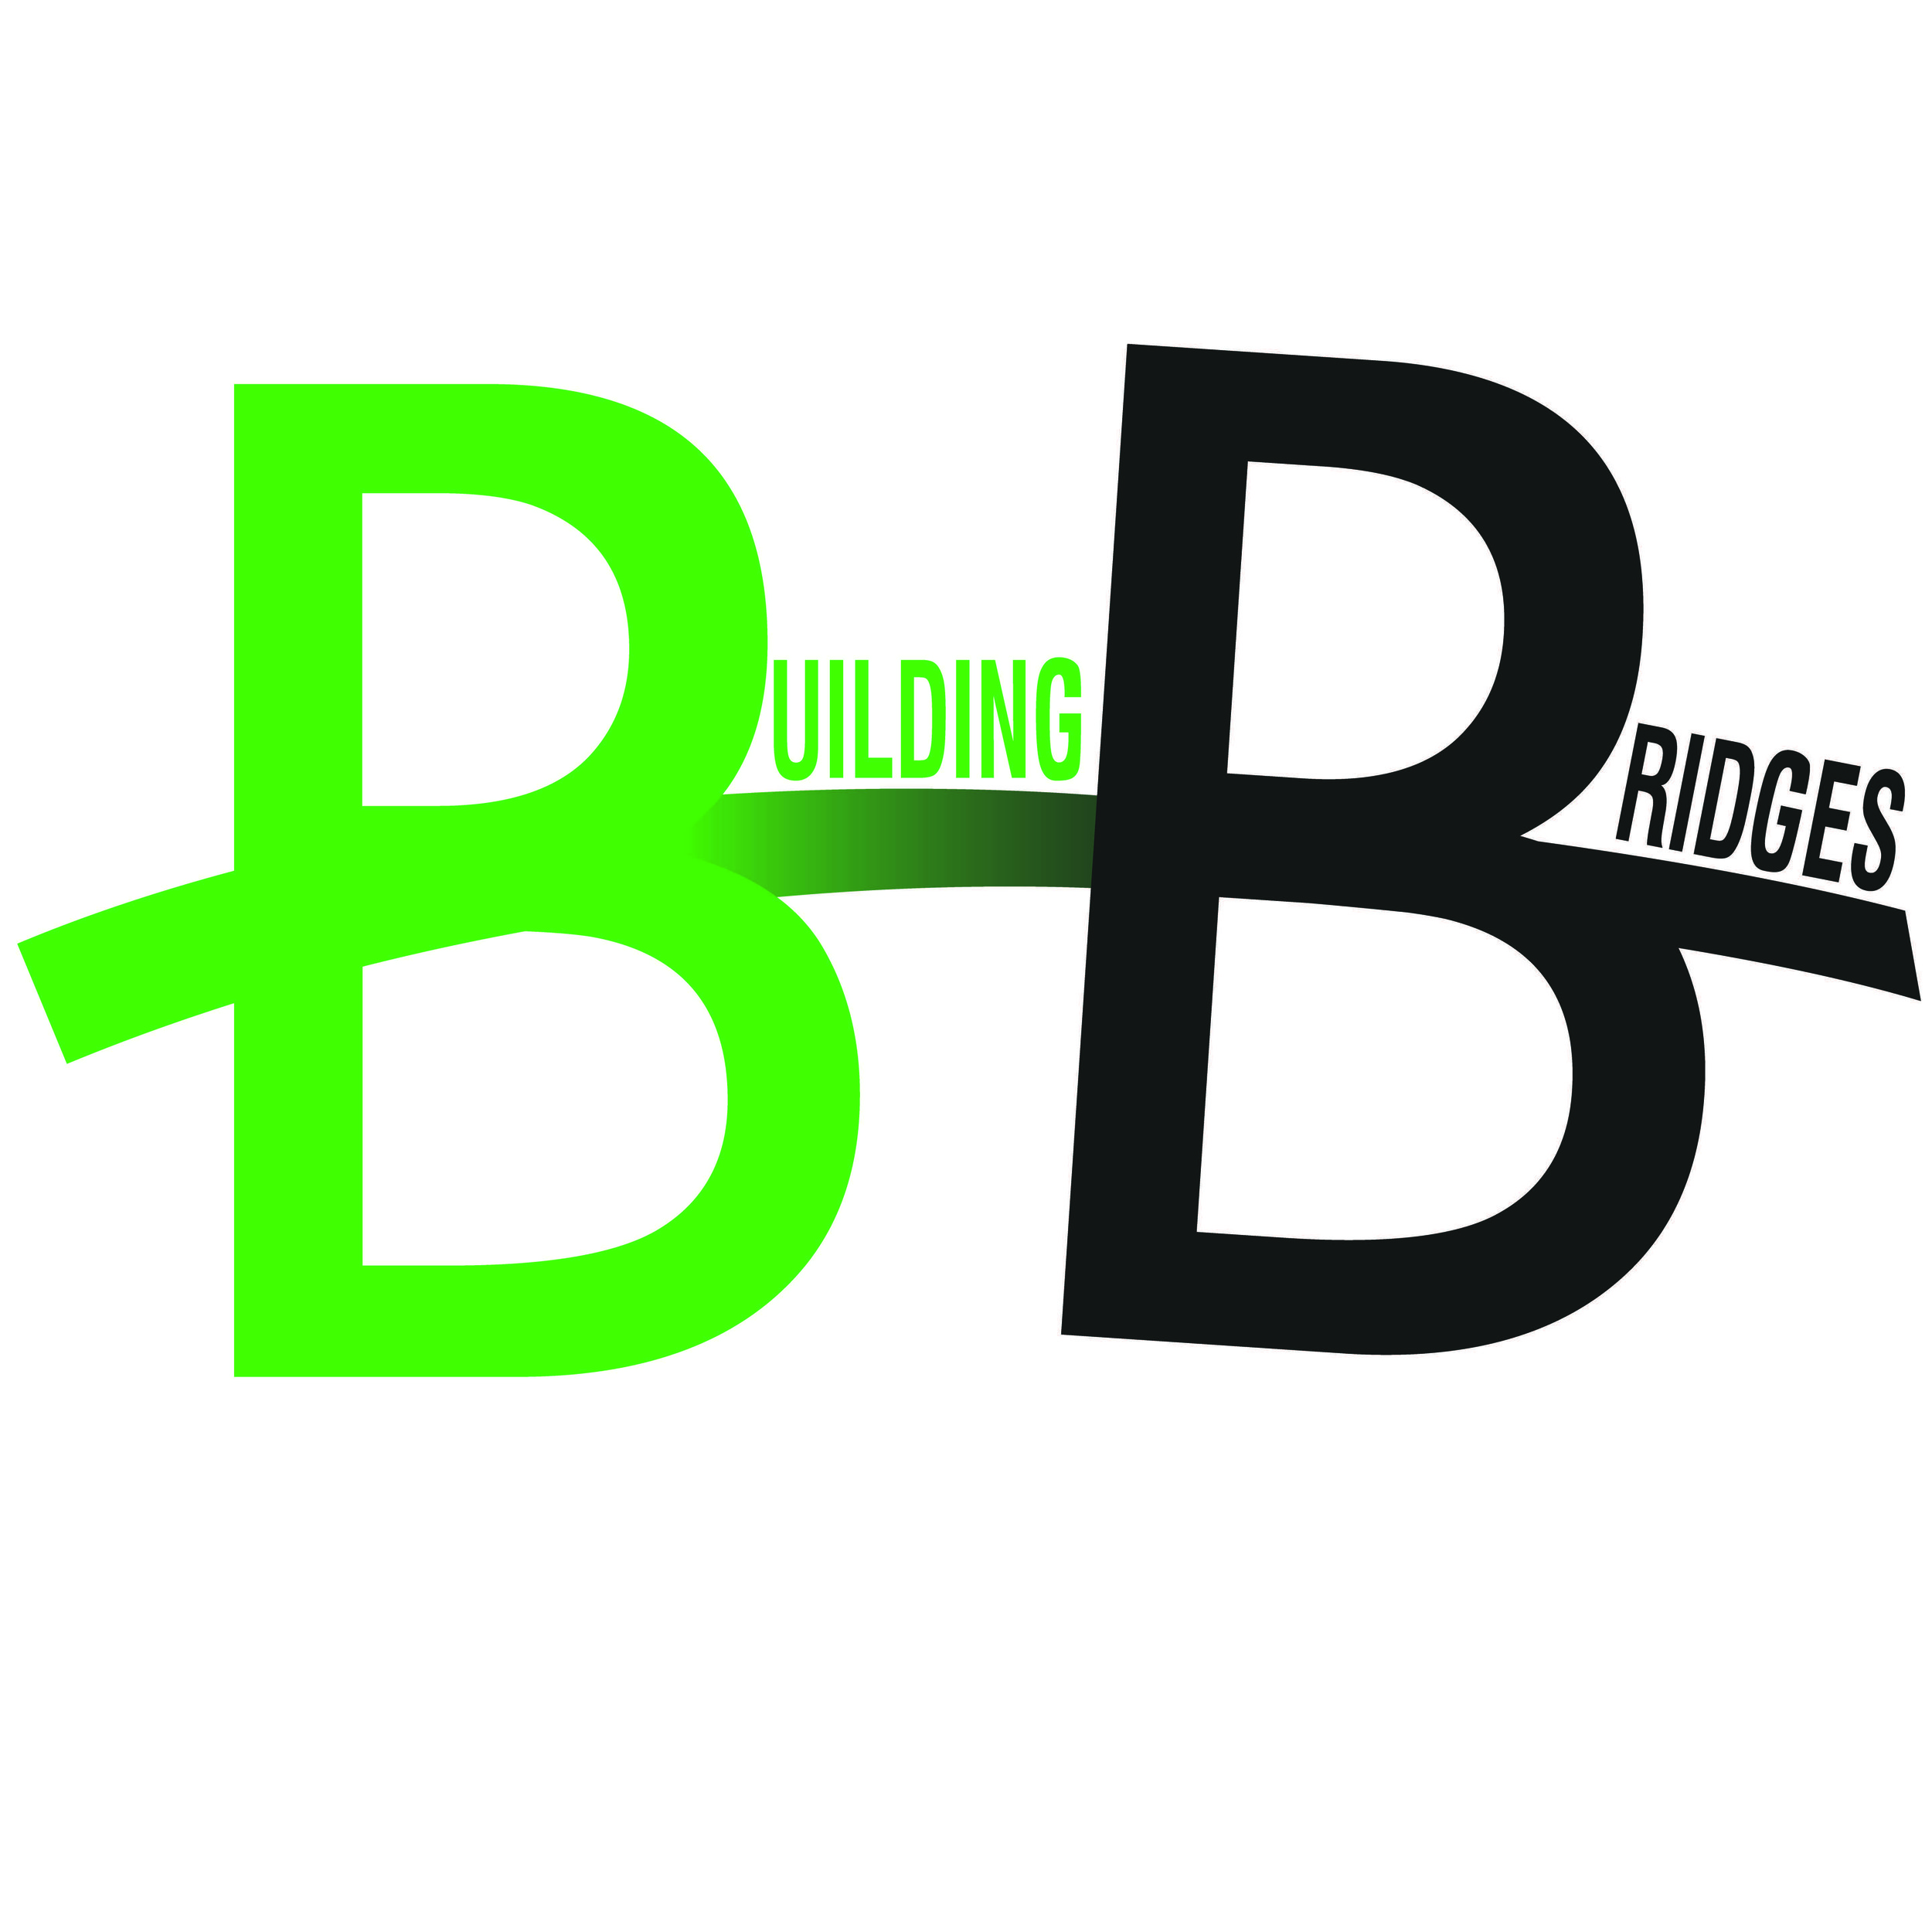 The logo of a new organization, Building Bridges, seeking to promote the development of the Pedestrian Bridge and Park as part of the redevelopment of the former 195 land.